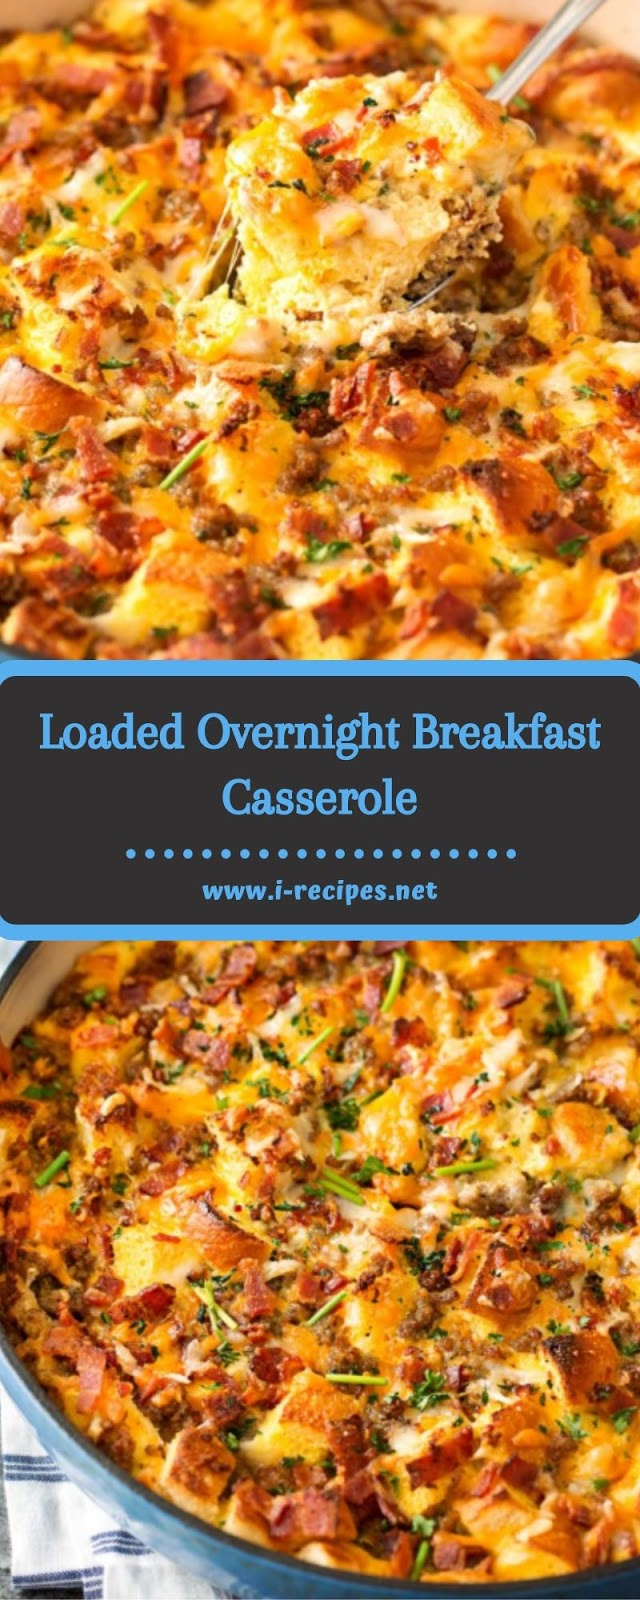 Loaded Overnight Breakfast Casserole